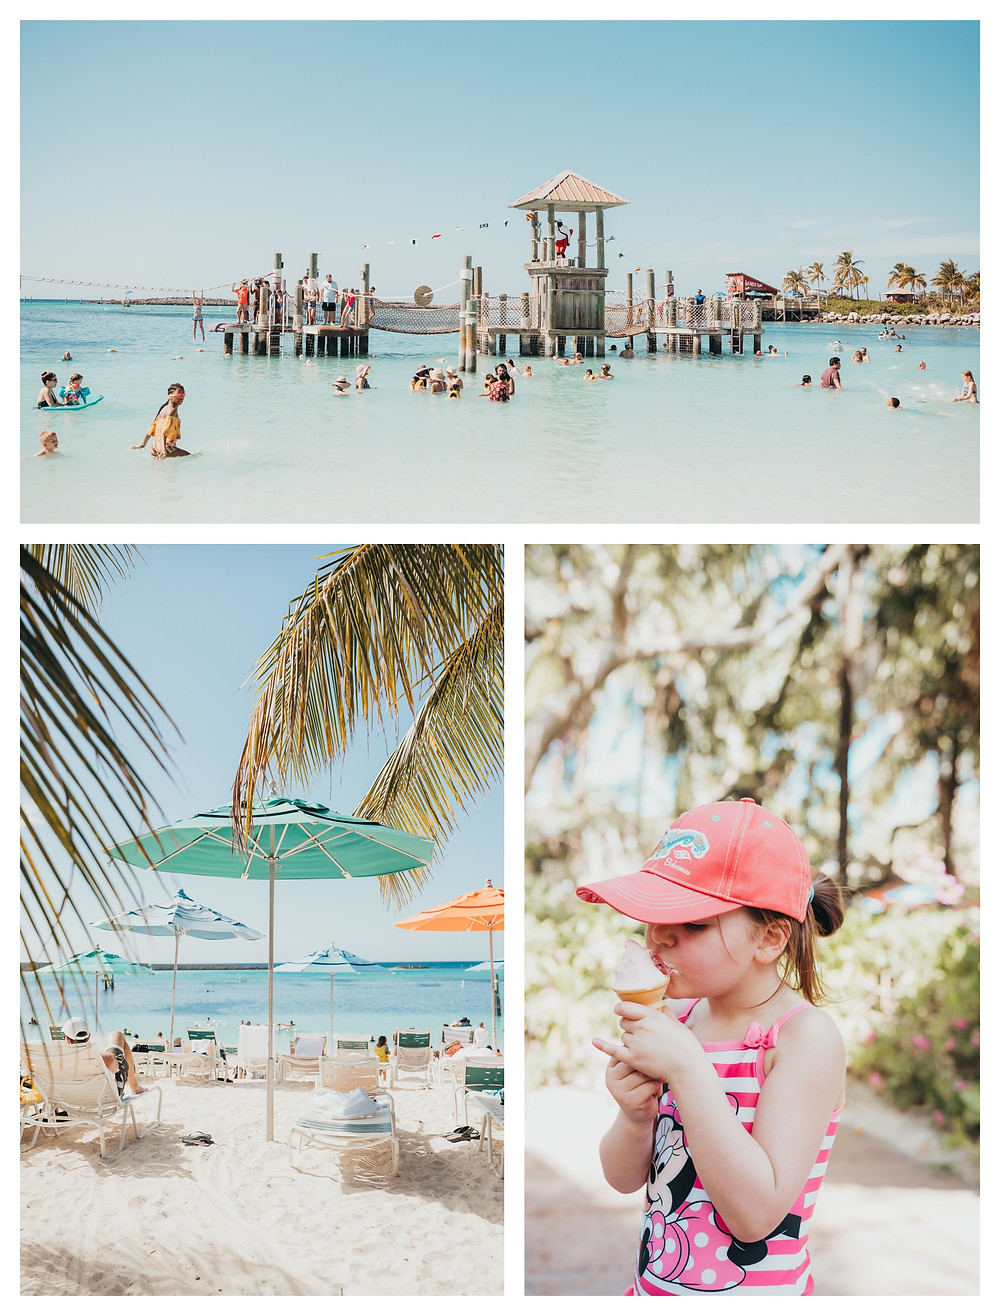 Photos of Disney's Castaway Cay island.